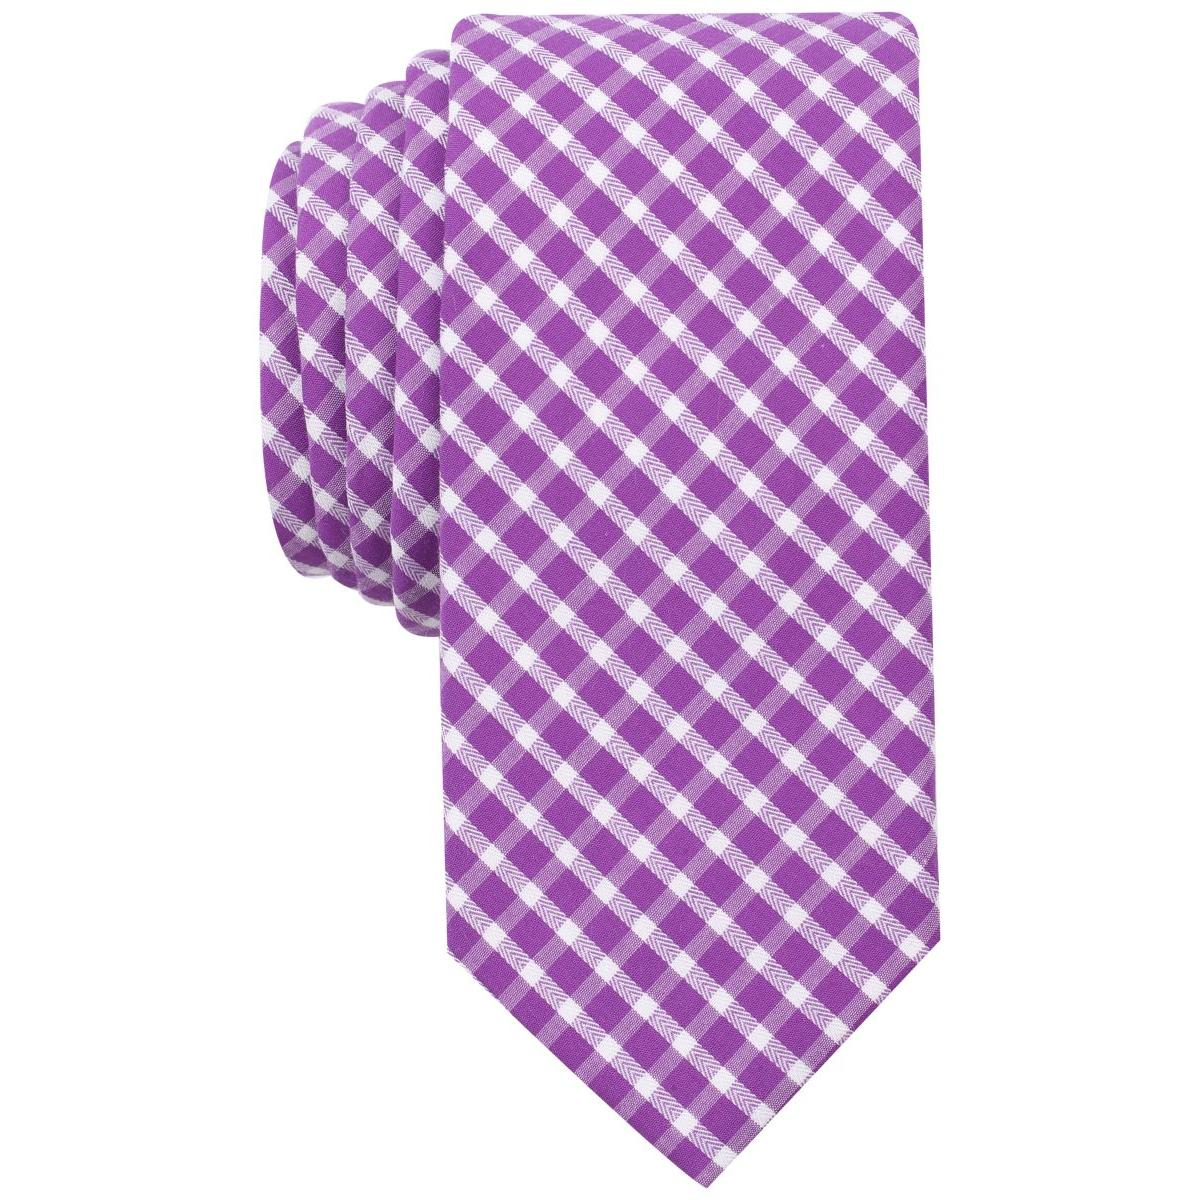 57f6caad89 Details about Bar III Mens Mulberry Purple Gingham Check Print Skinny Neck  Tie O S BHFO 3254